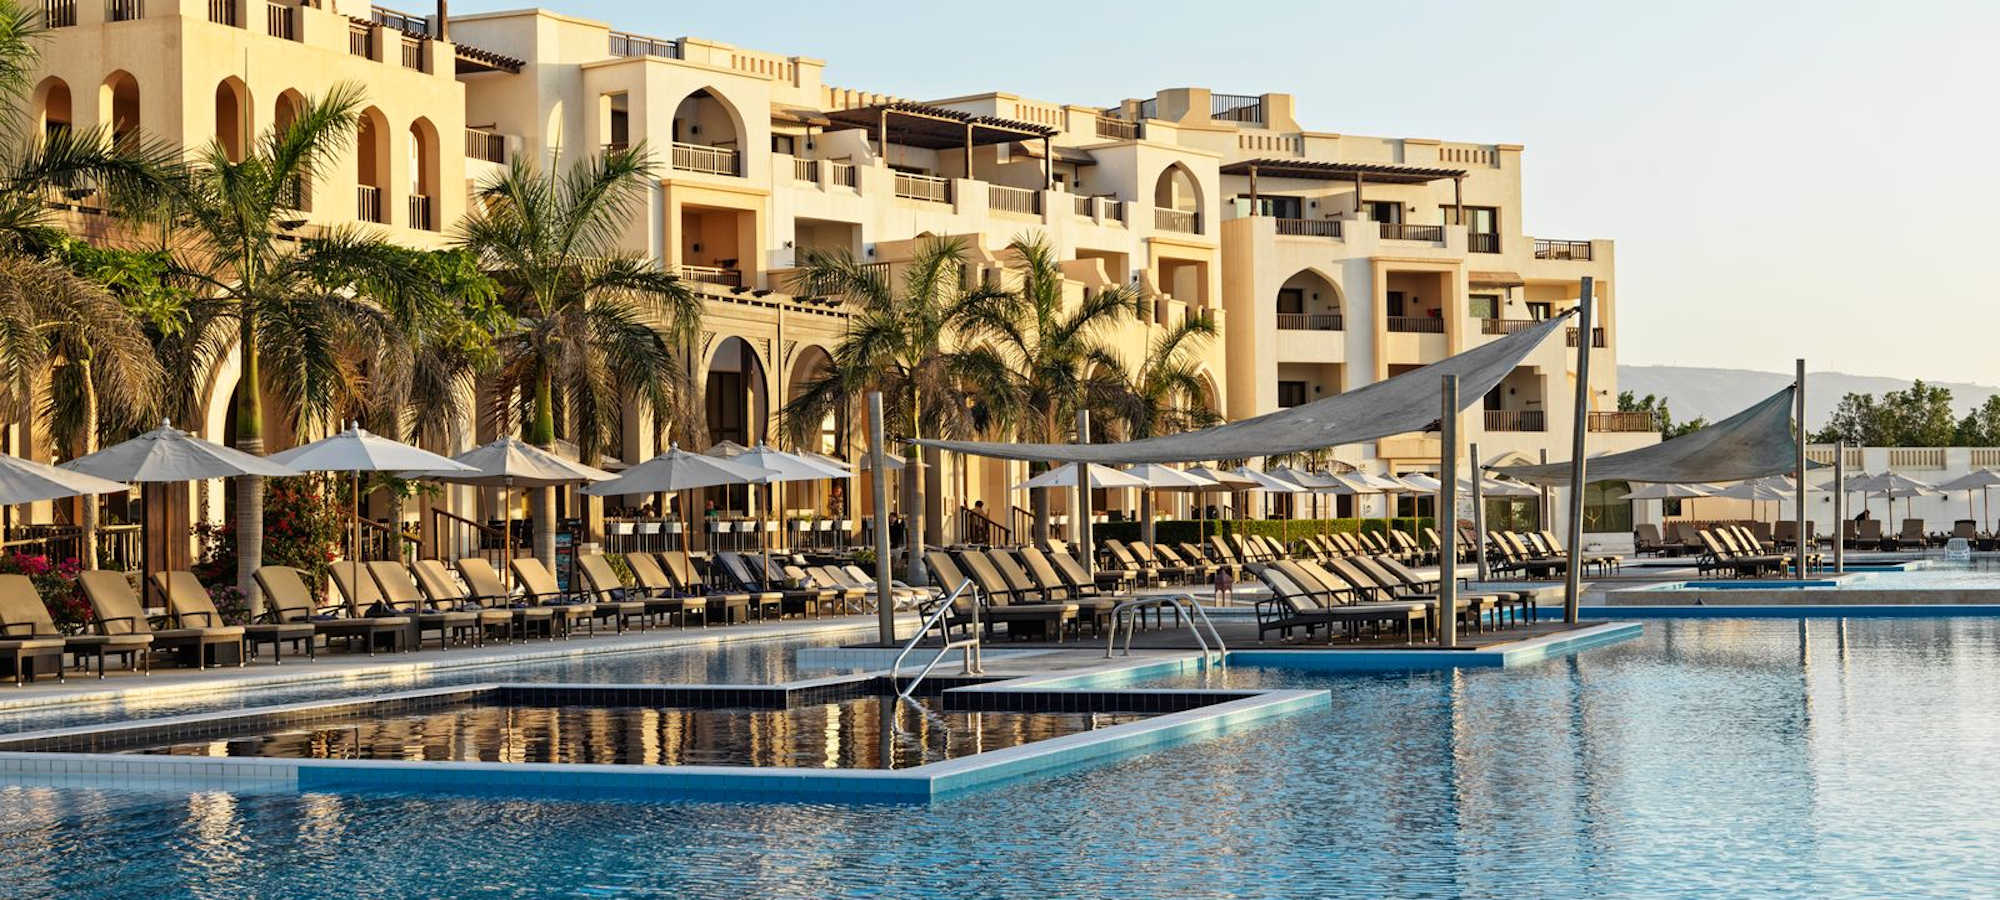 The main pool of Fanar Hotel and Residences surrounded by sunbeds and umbrellas in Salalah Oman